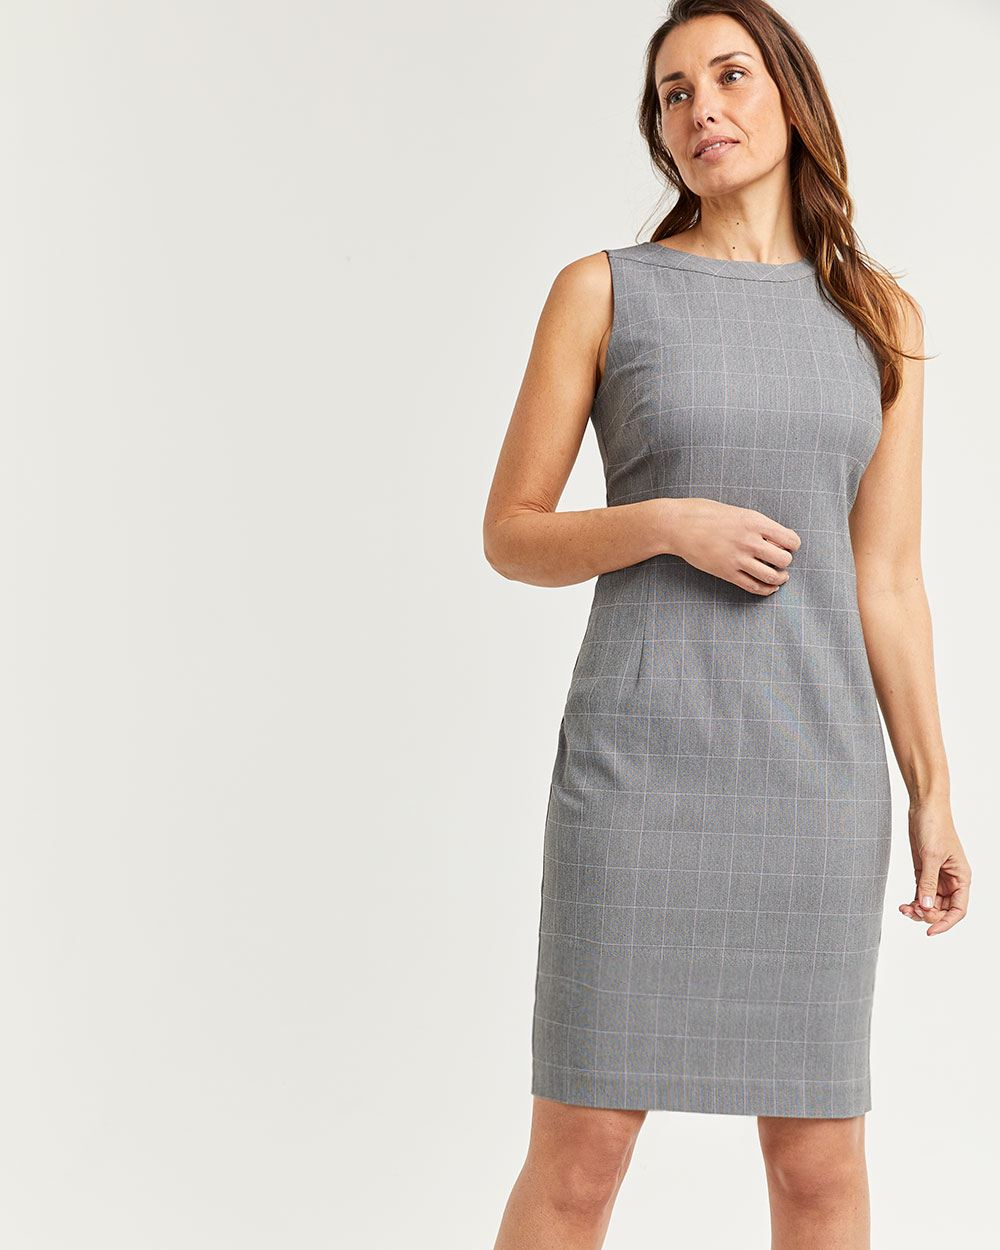 Windowpane Sleeveless Boat Neck Dress